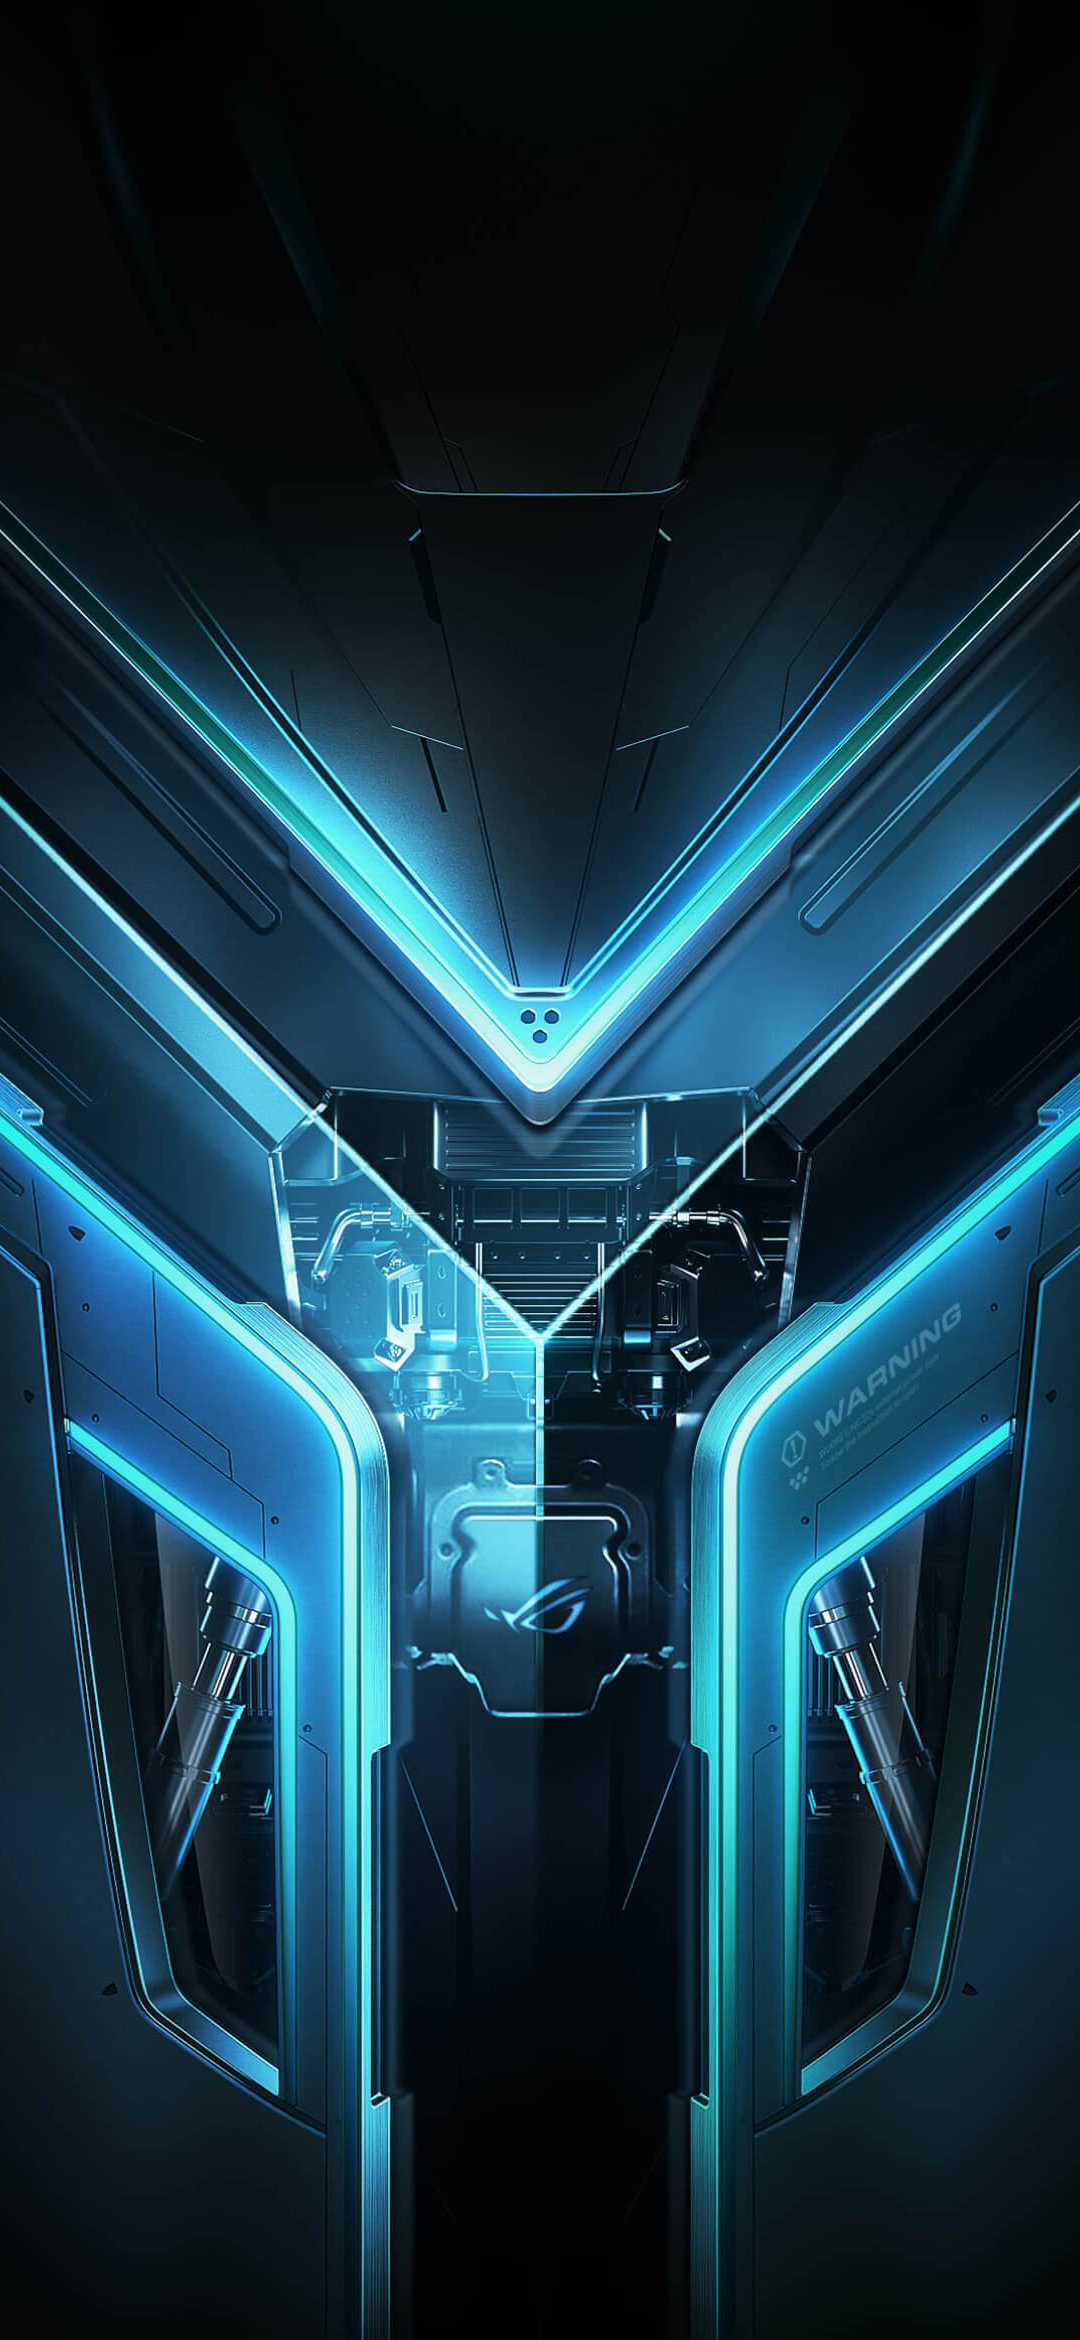 Asus Rog Phone 3 Wallpaper Ytechb Exclusive In 2020 Hd Wallpapers For Laptop Stock Wallpaper Phone Wallpaper Design